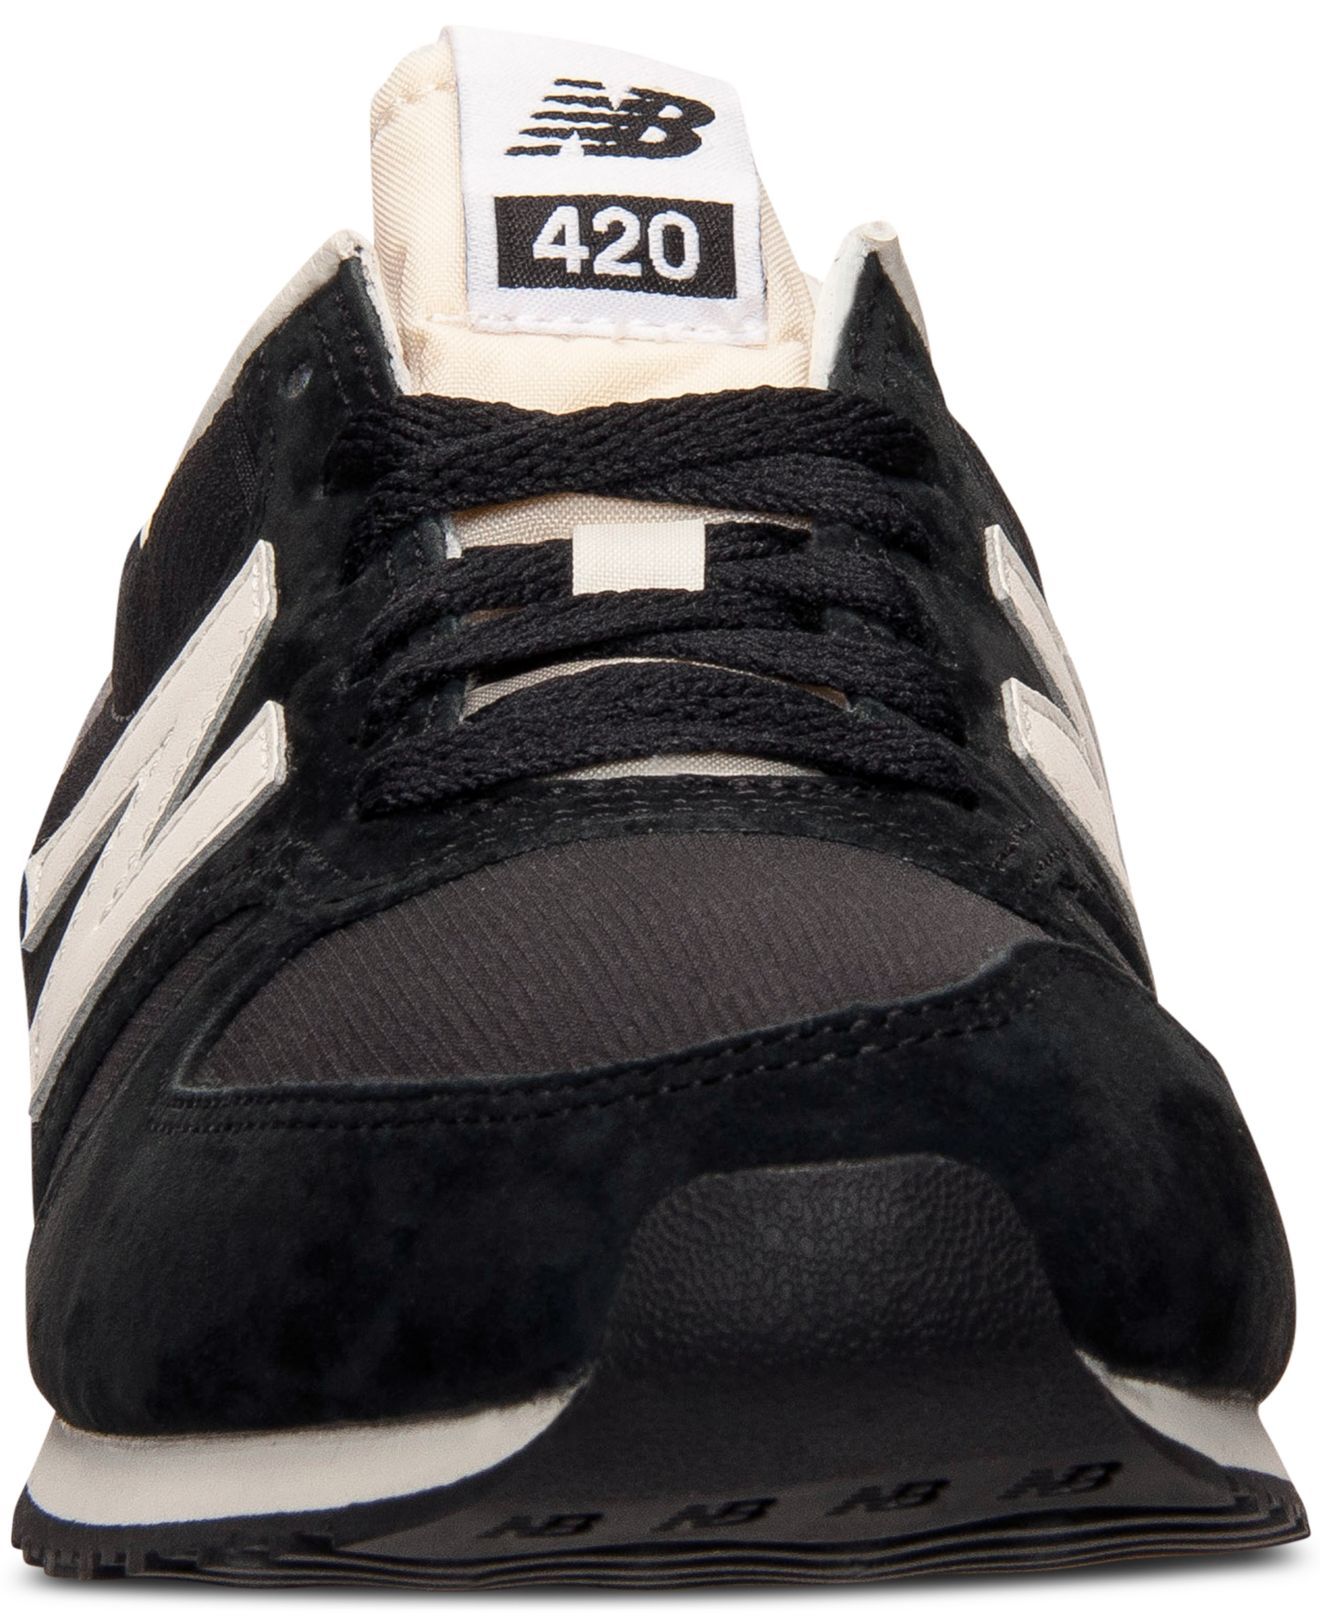 Men's 420 Pigskin Casual Sneakers From Finish Line